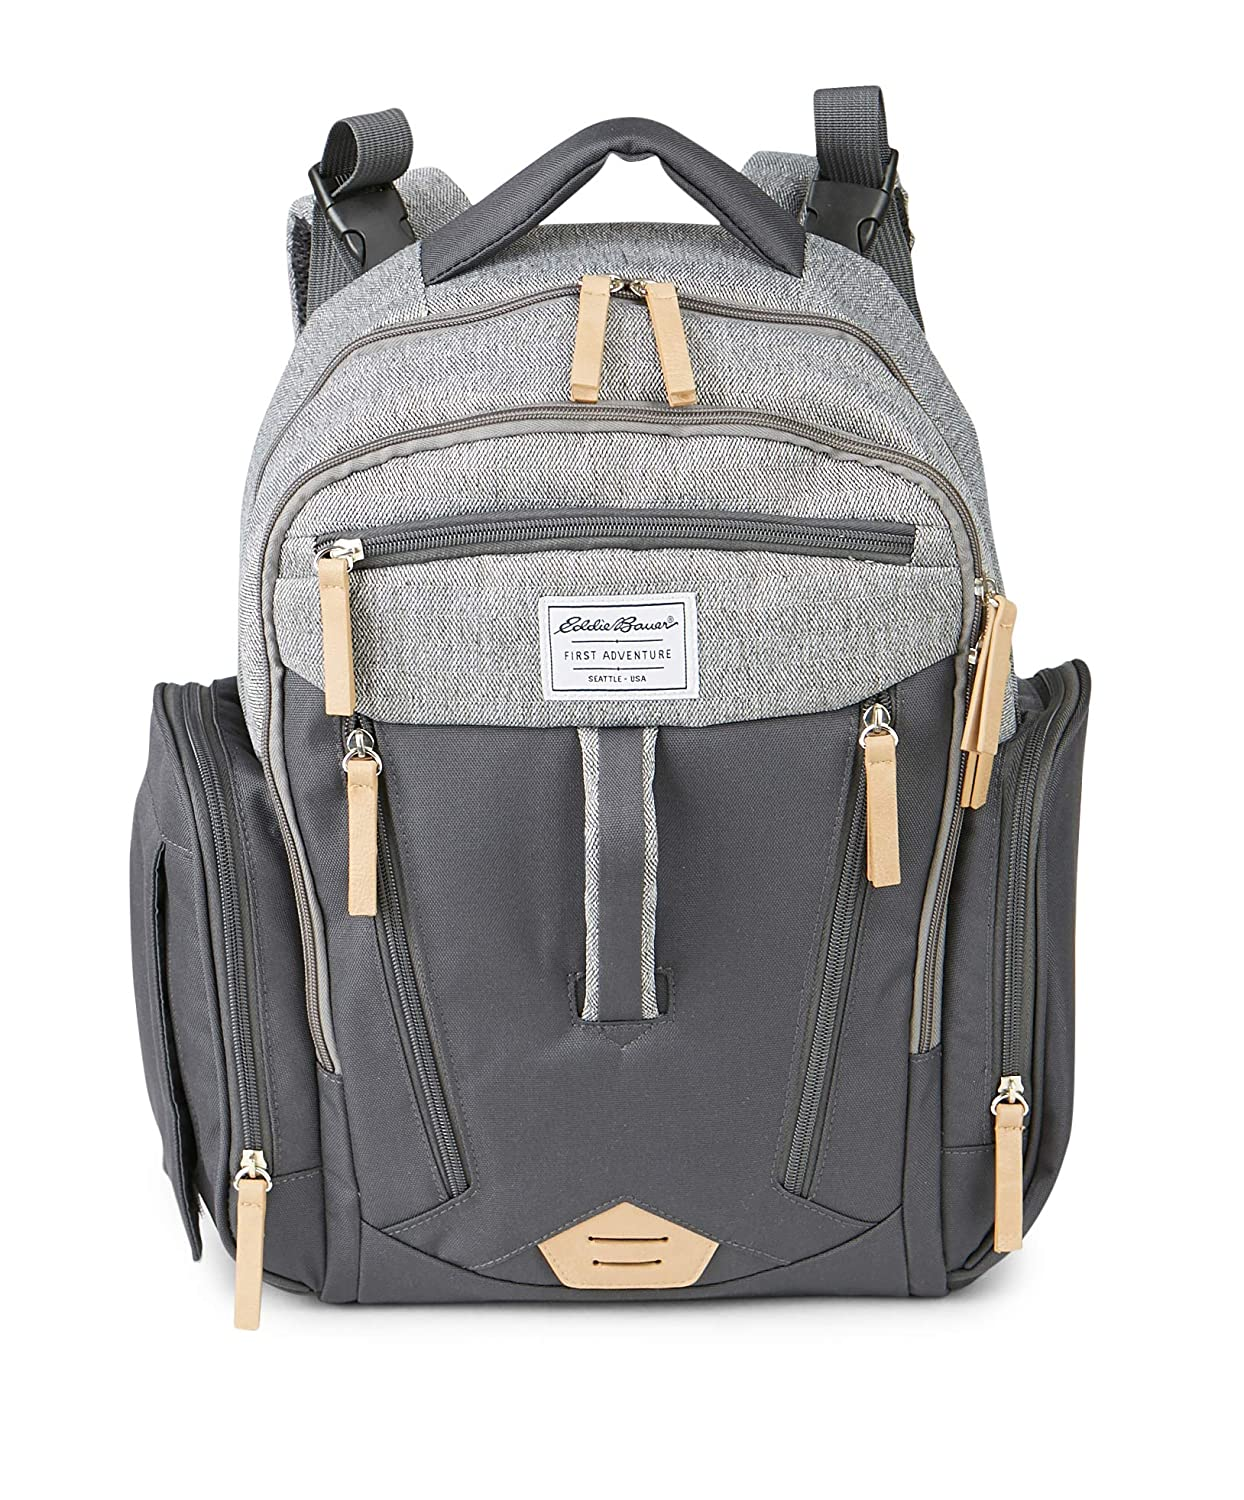 Eddie Bauer Crescent Back Pack Diaper Bag